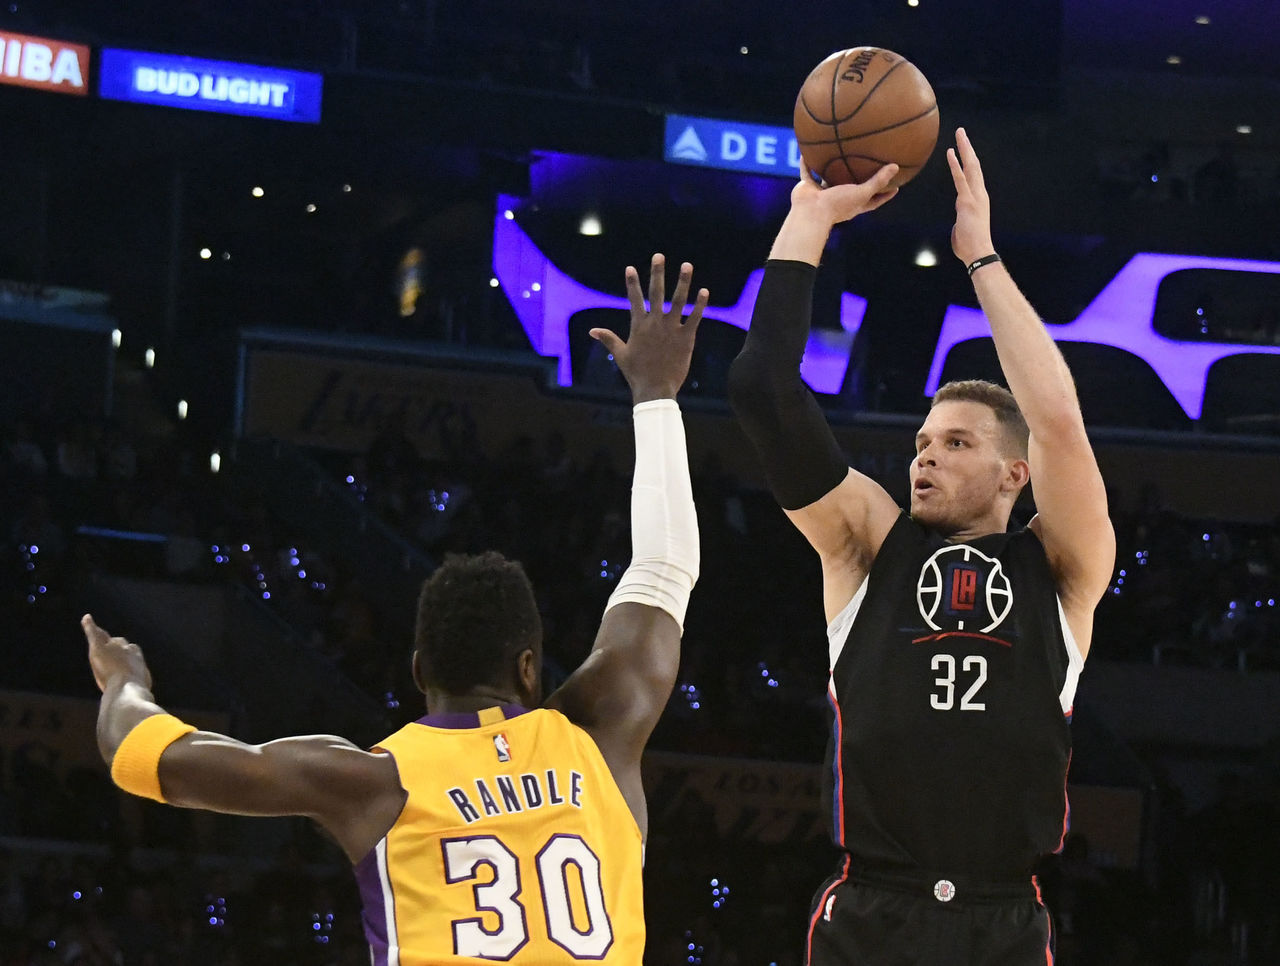 Cropped_2017-03-22t025102z_1525608284_nocid_rtrmadp_3_nba-los-angeles-clippers-at-los-angeles-lakers